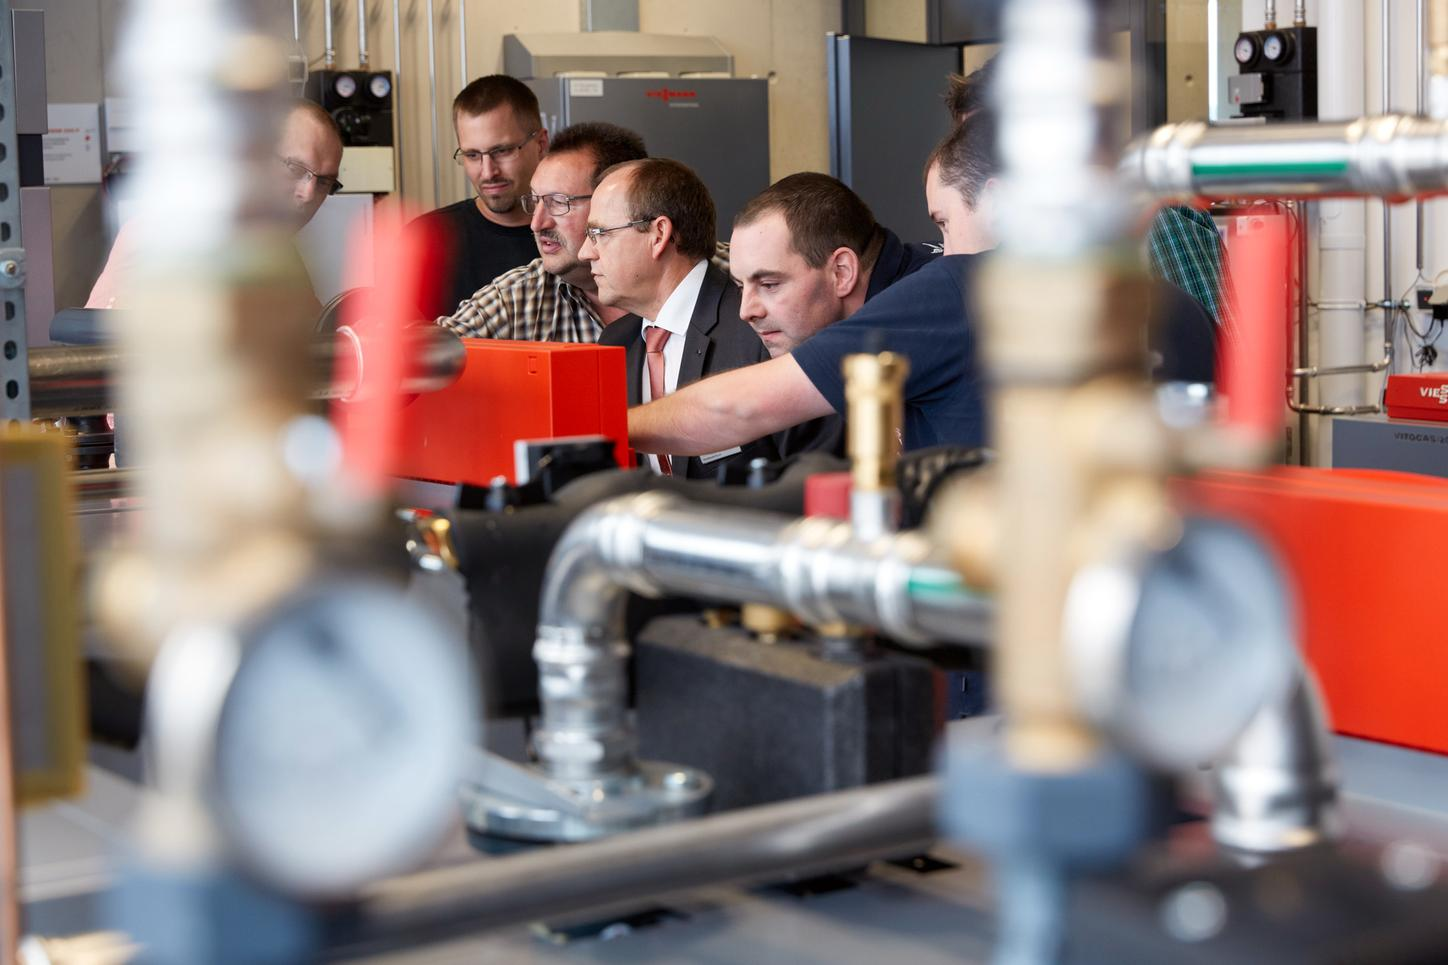 The picture shows employees during a product training.